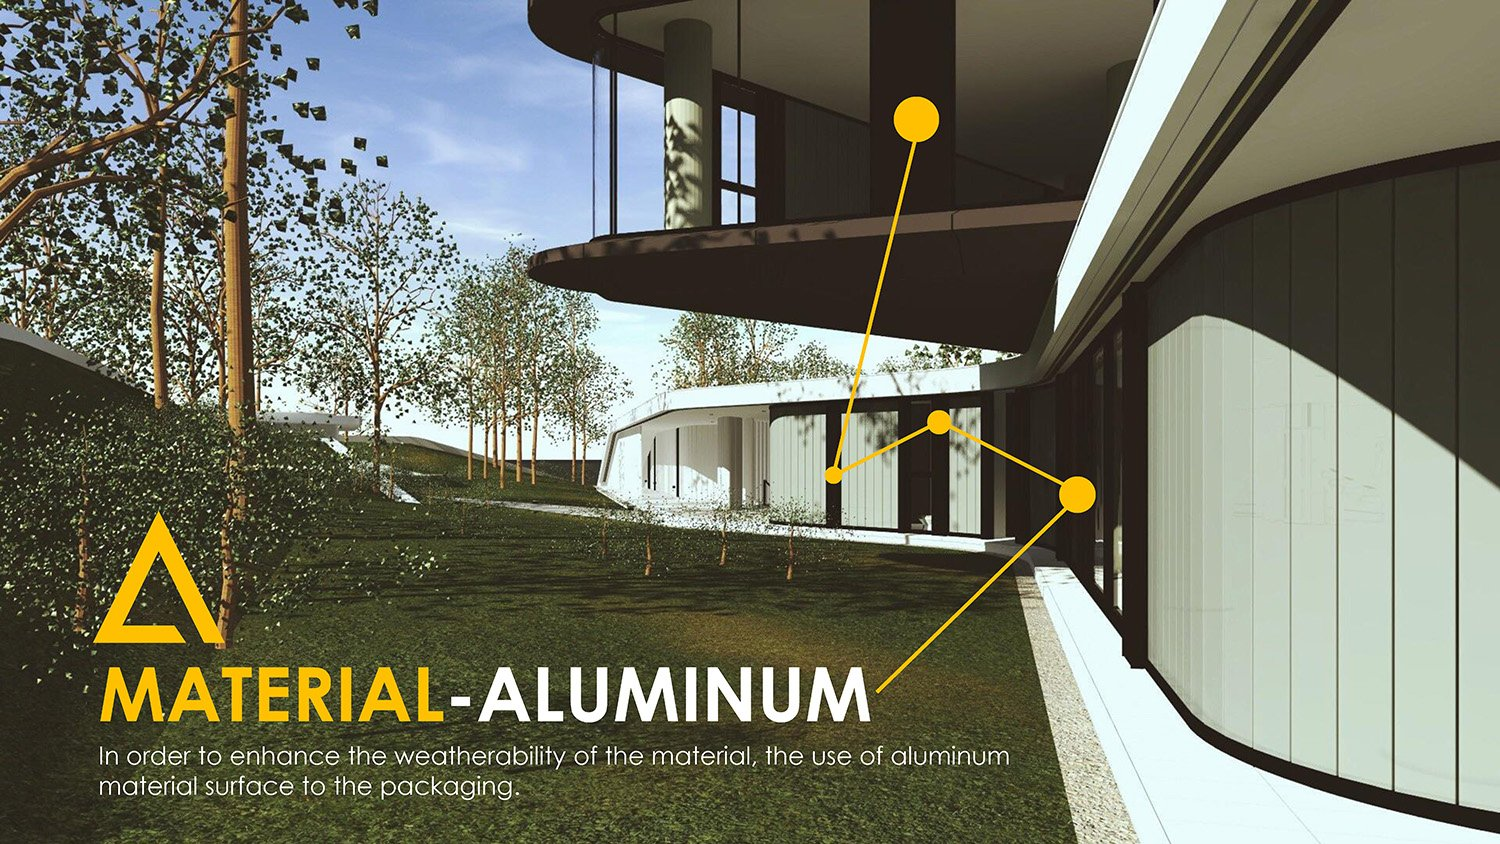 MATERIAL-ALUMINUM Chain10 Architecture & Interior Design Institute}